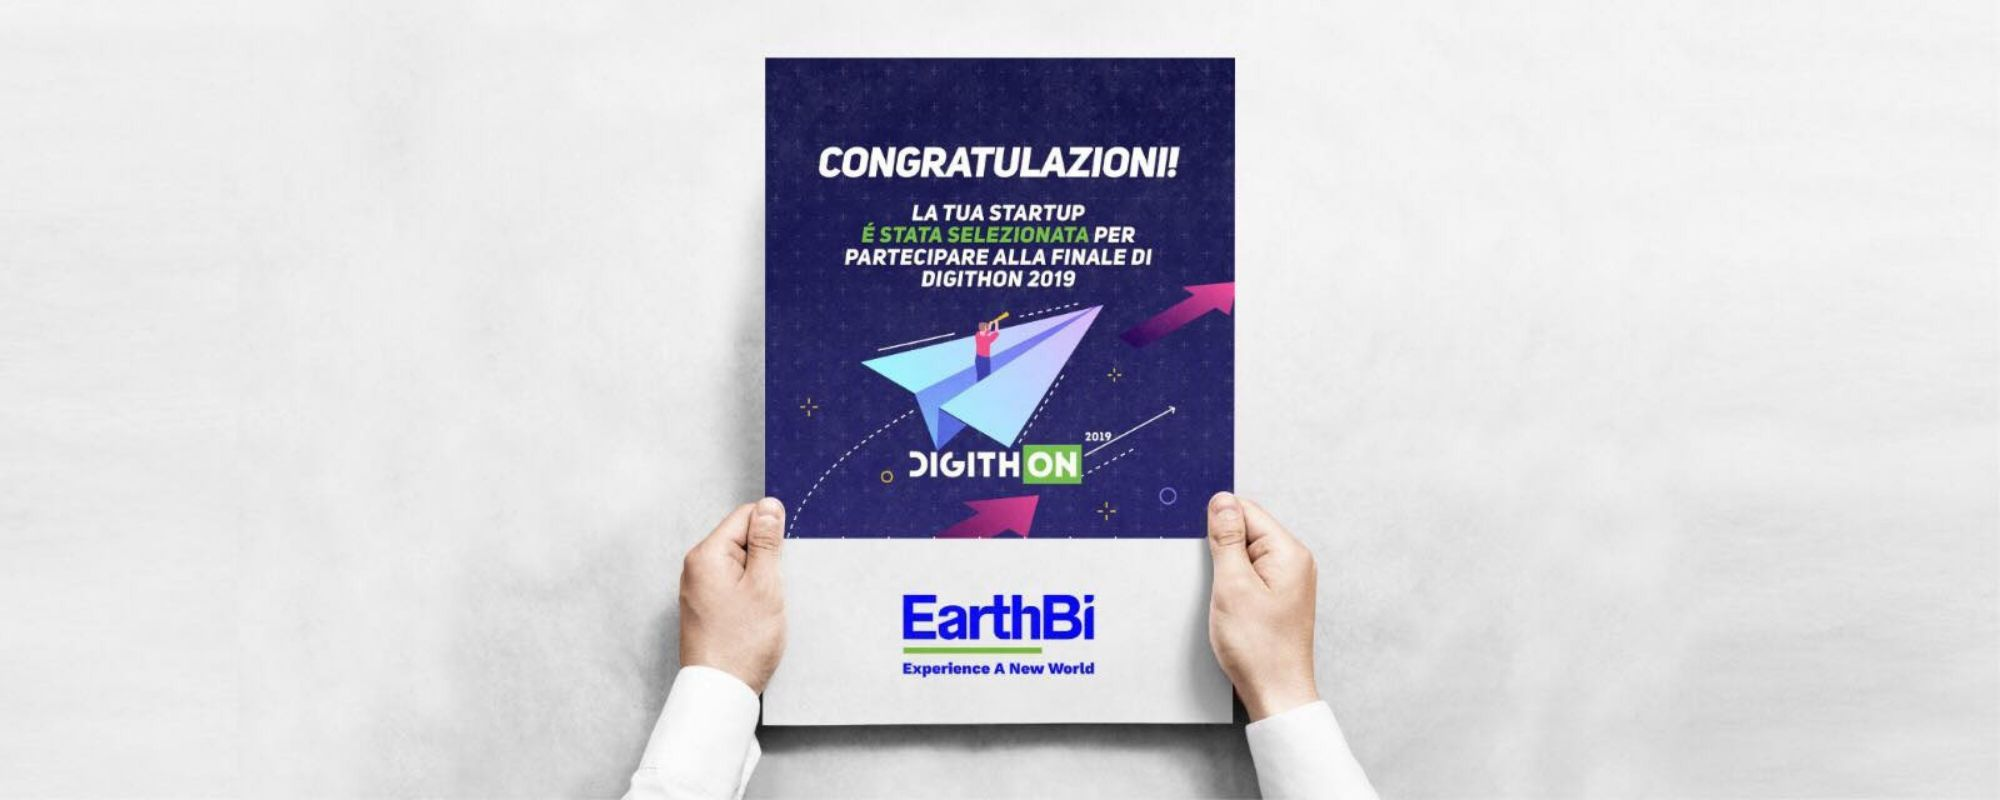 EarthBi DigithOn